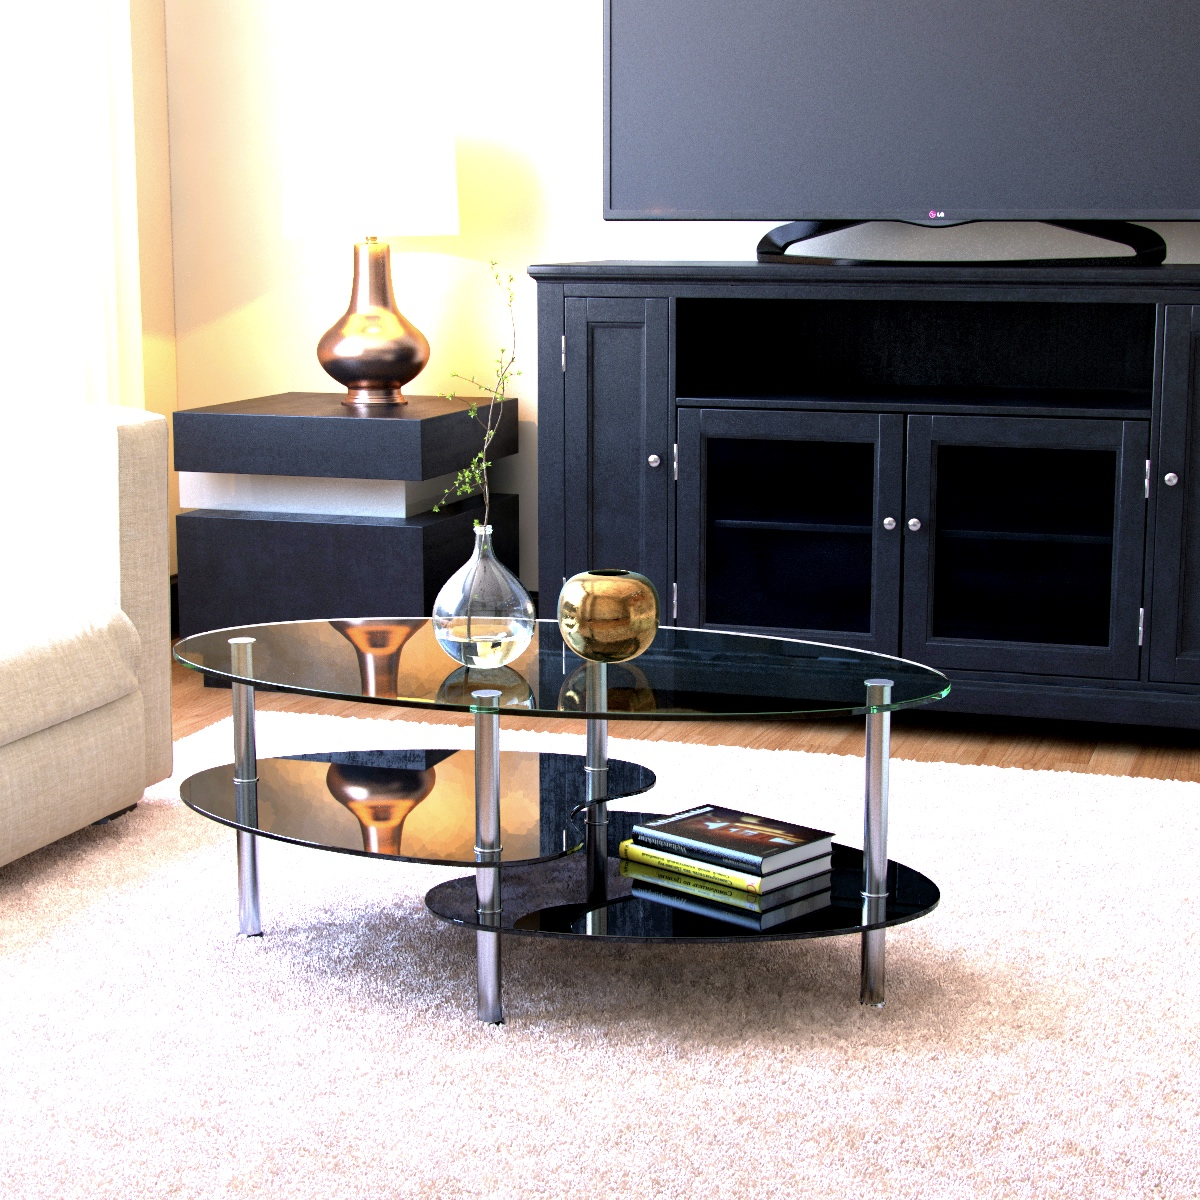 Ryan Rove Becca - Oval Two Tier Glass Coffee Table - Tables for Living Room, Kitchen, Bedroom and Office - Glass Shelves Under D